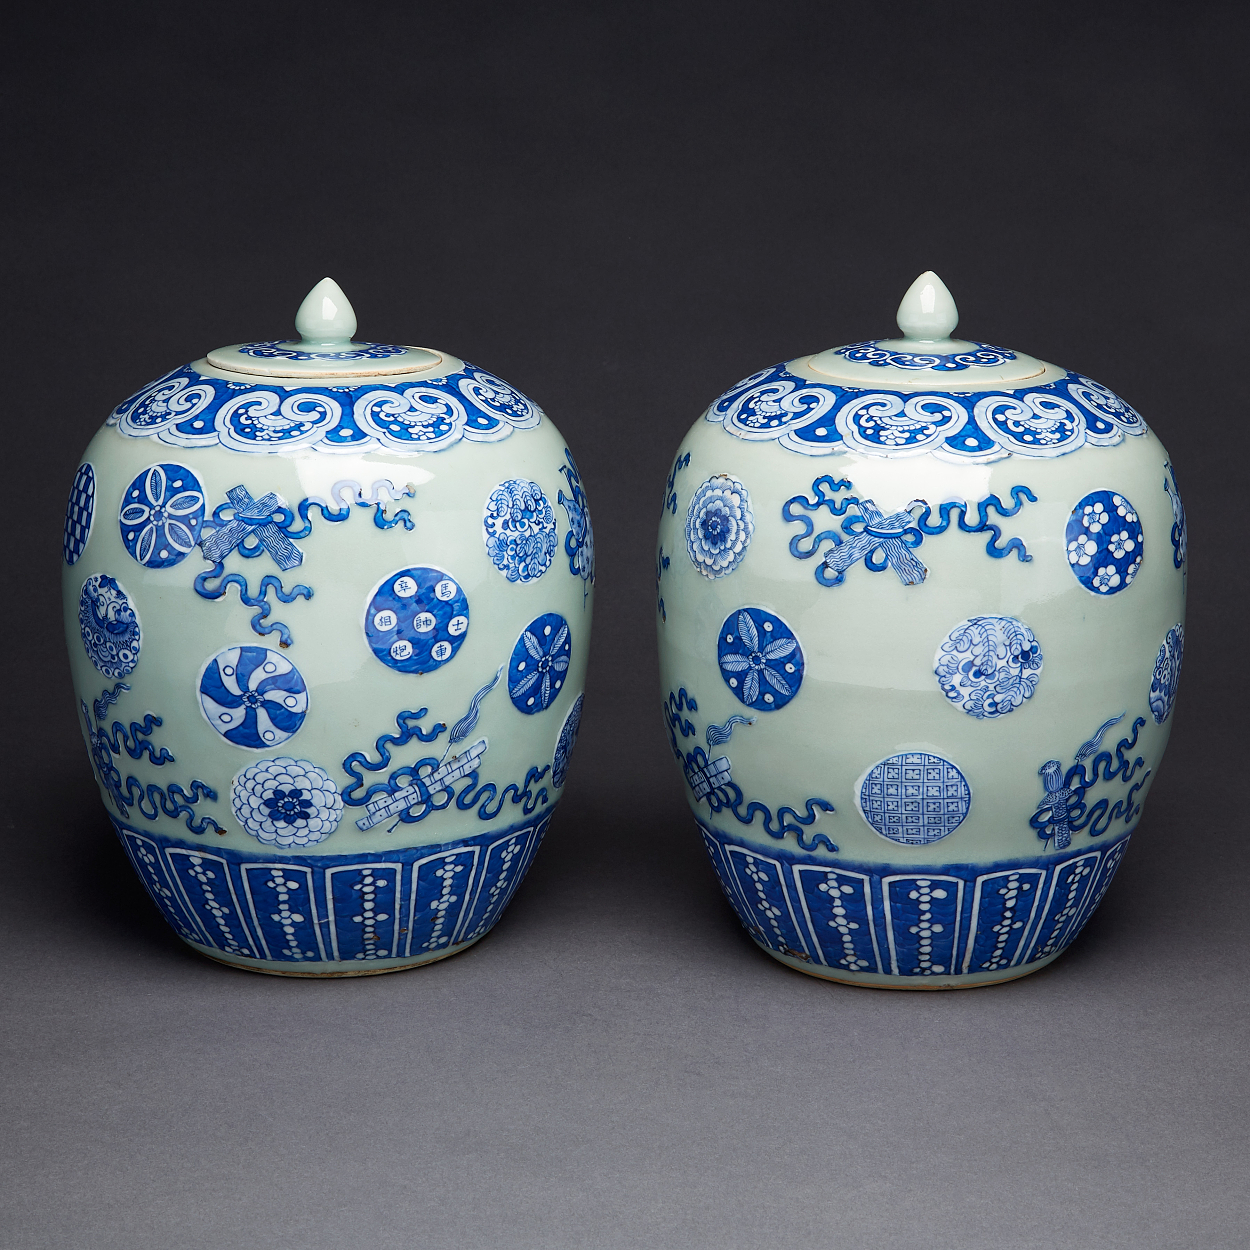 A Pair of Celadon Jars with Covers